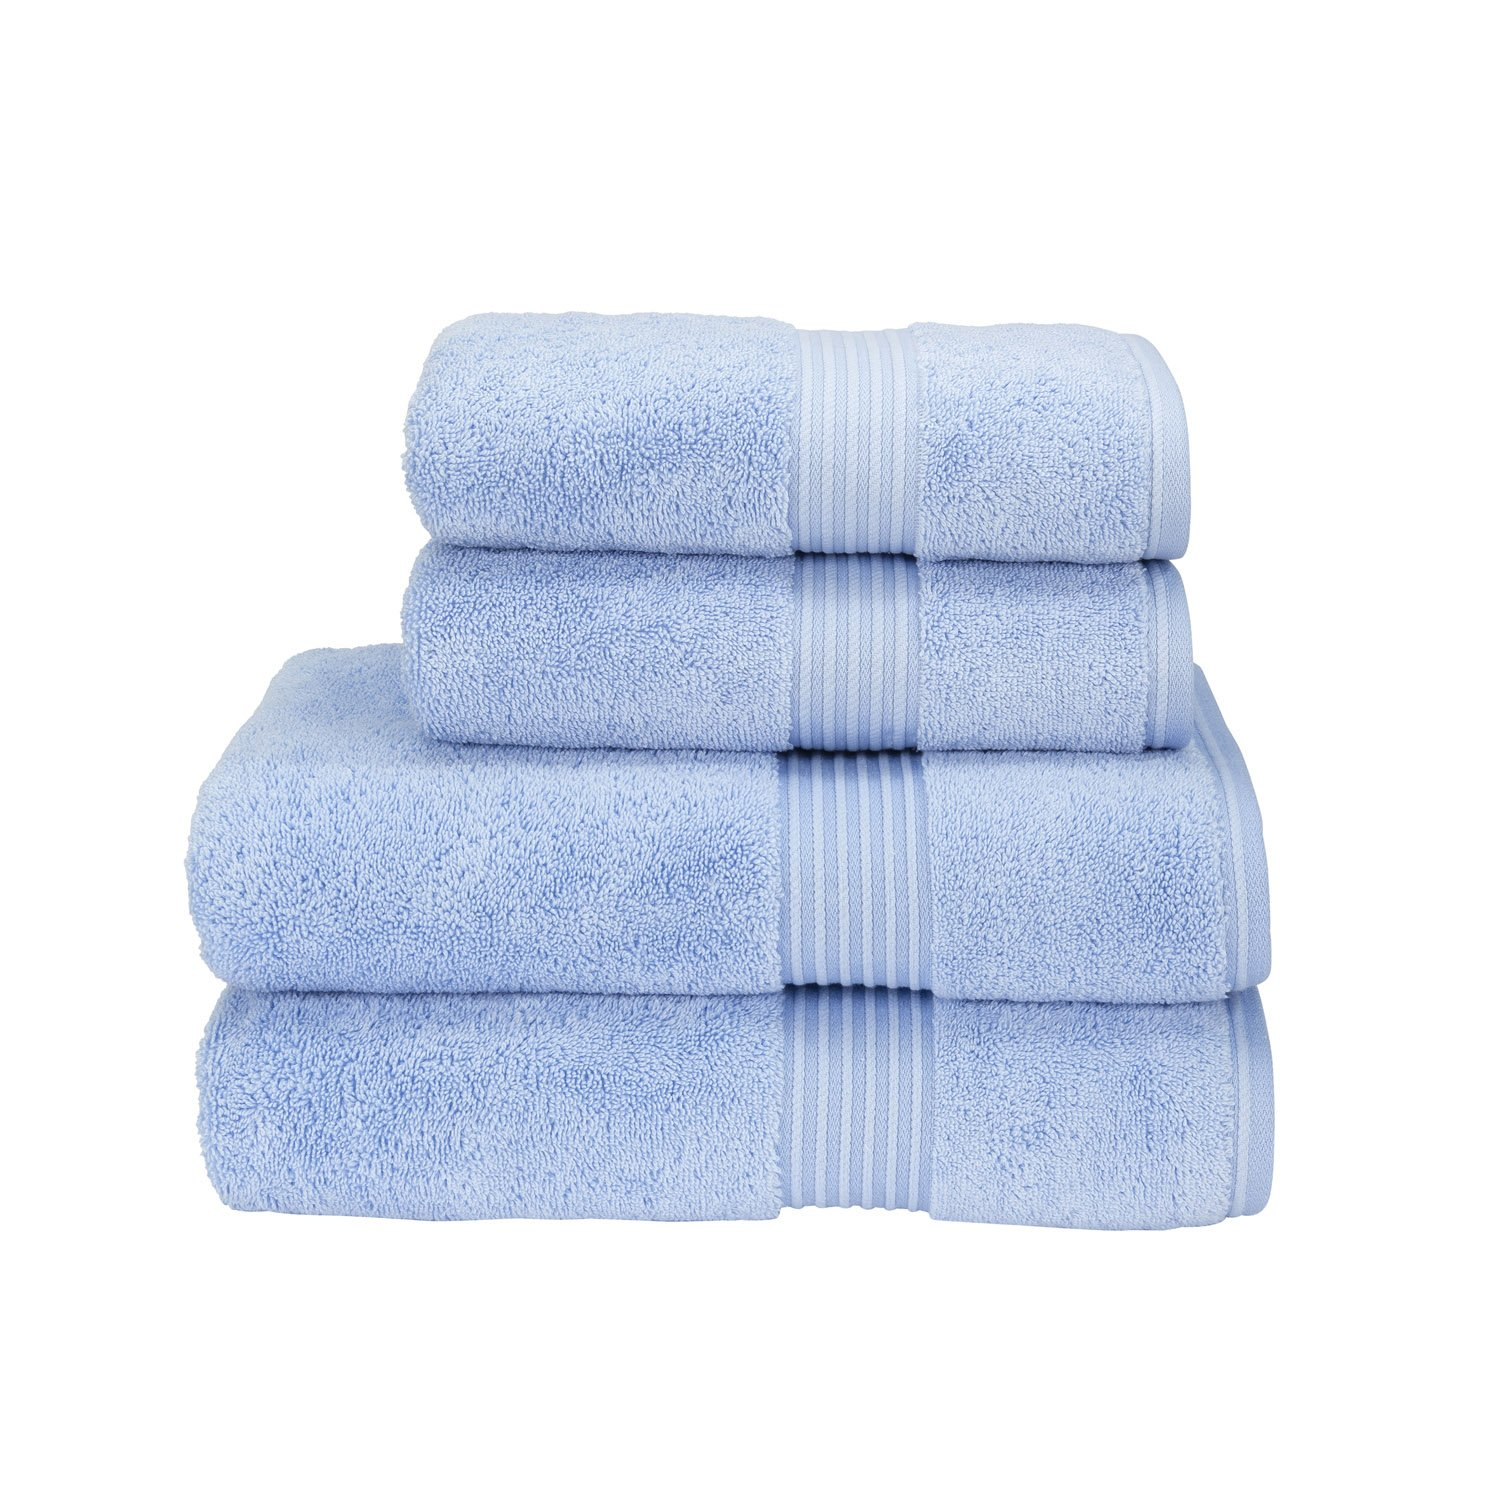 Christy Supreme Hygro Bathroom Towels 650 gsm 100% Cotton Exceptionally absorbent (Face Cloth 33cm x 33cm, Sky (Blue))